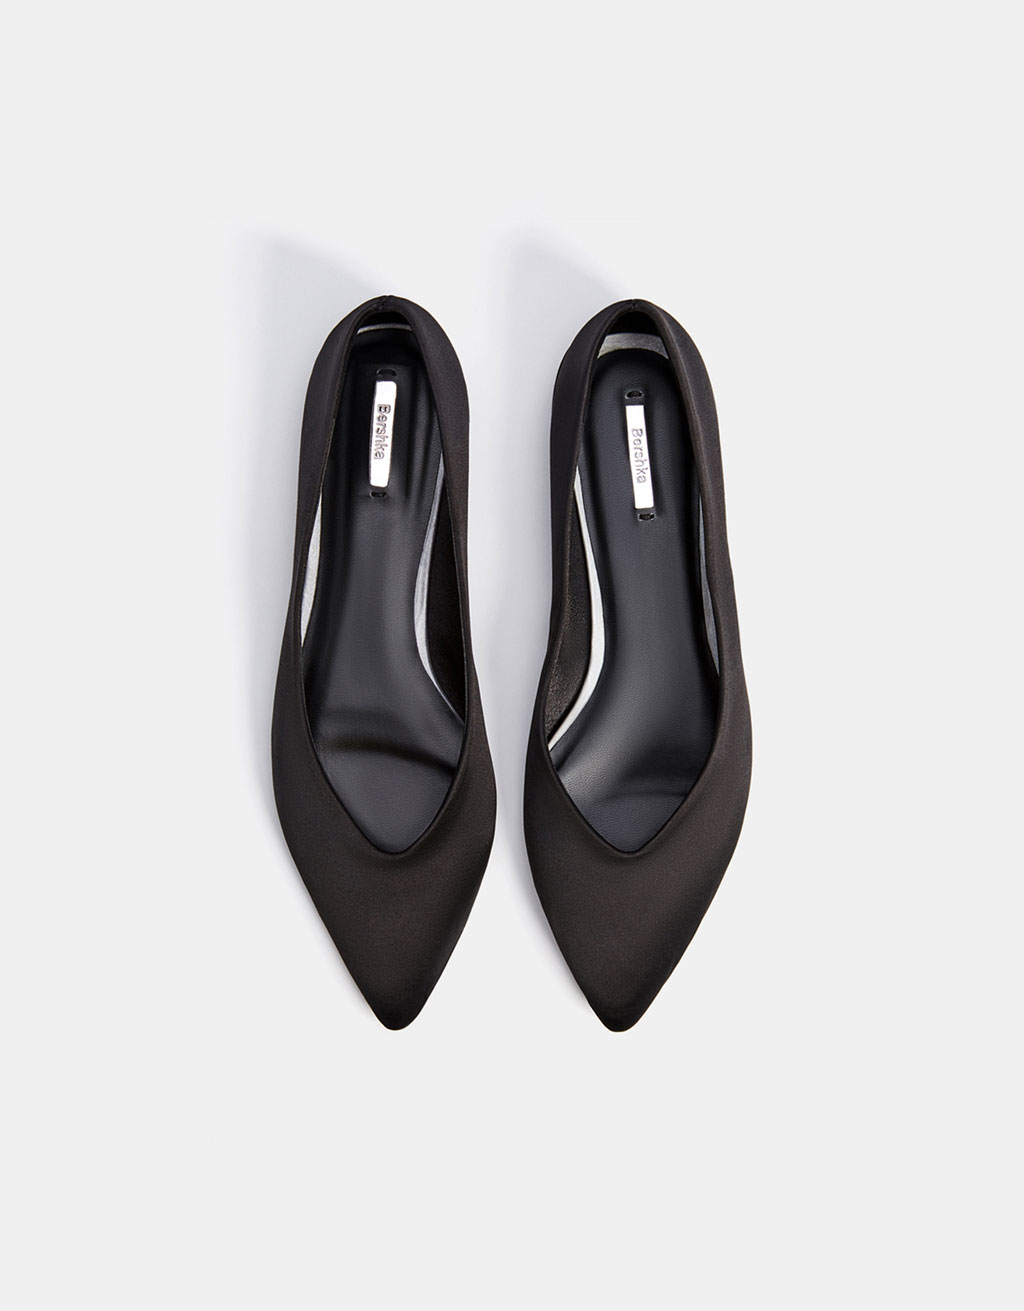 Satin ballerinas with pointed toe